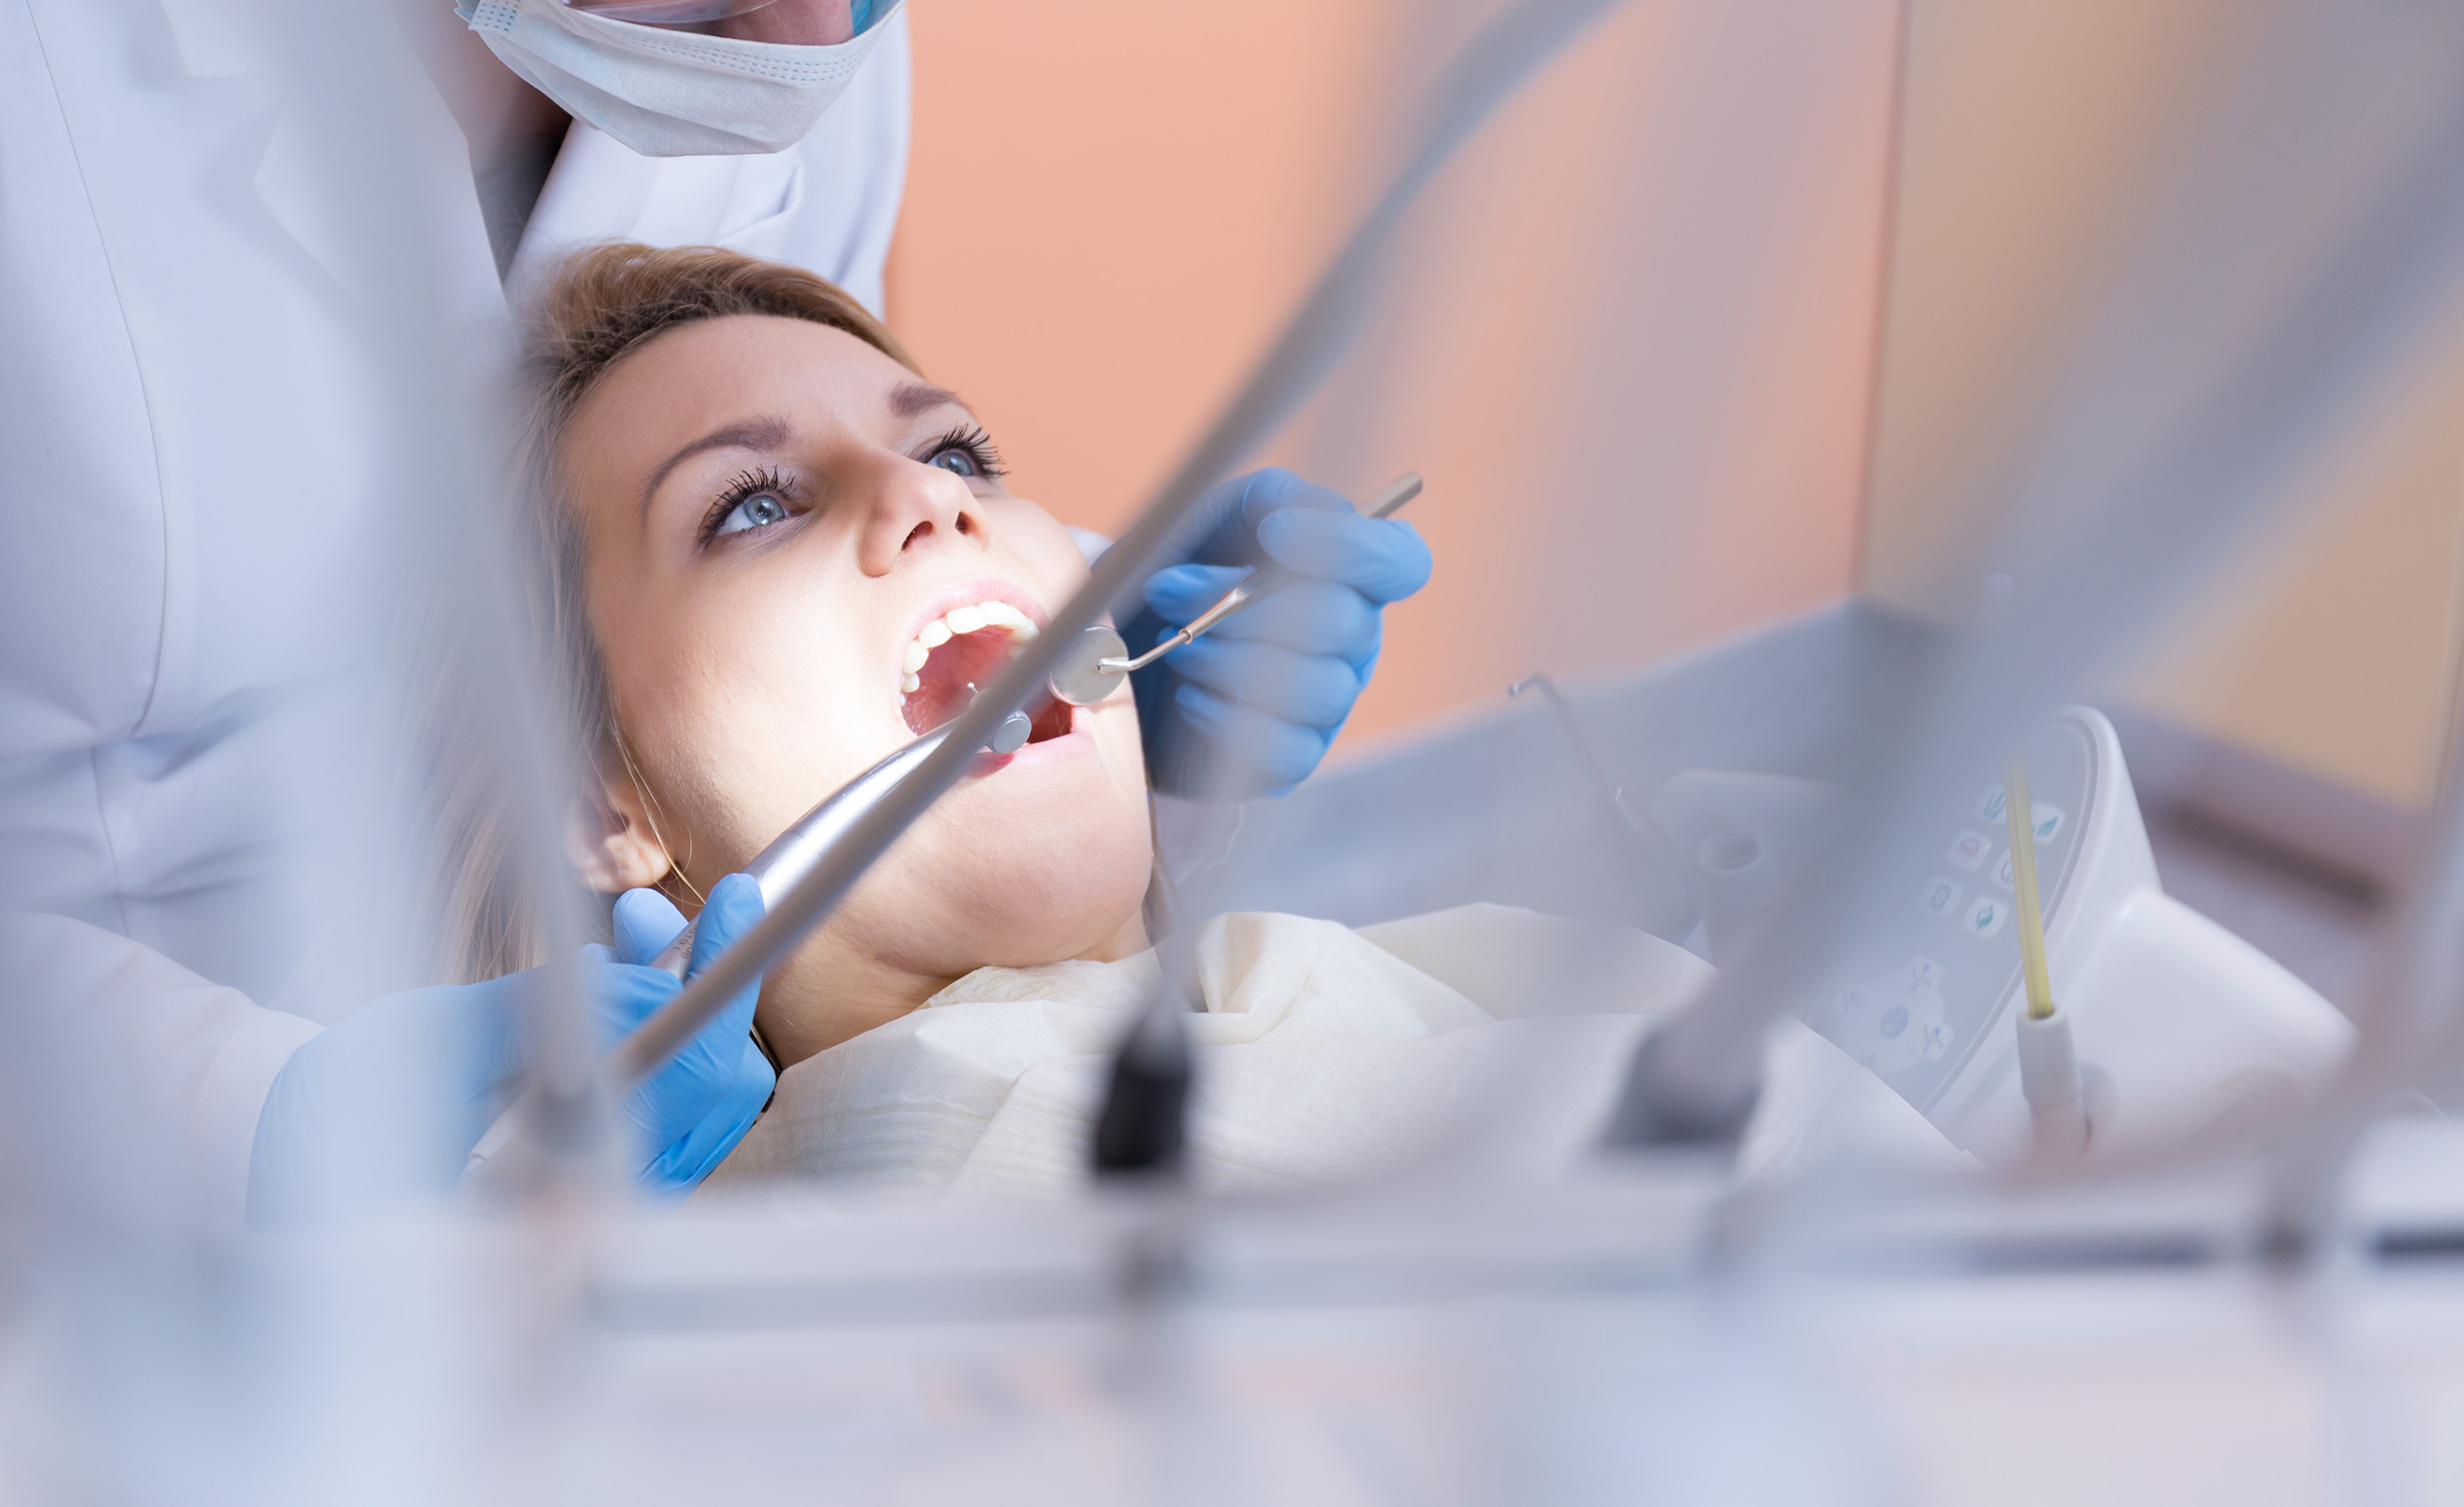 A blue-eyed woman is under a dental treatment (drilling a tooth) in a Budapest dentistry.